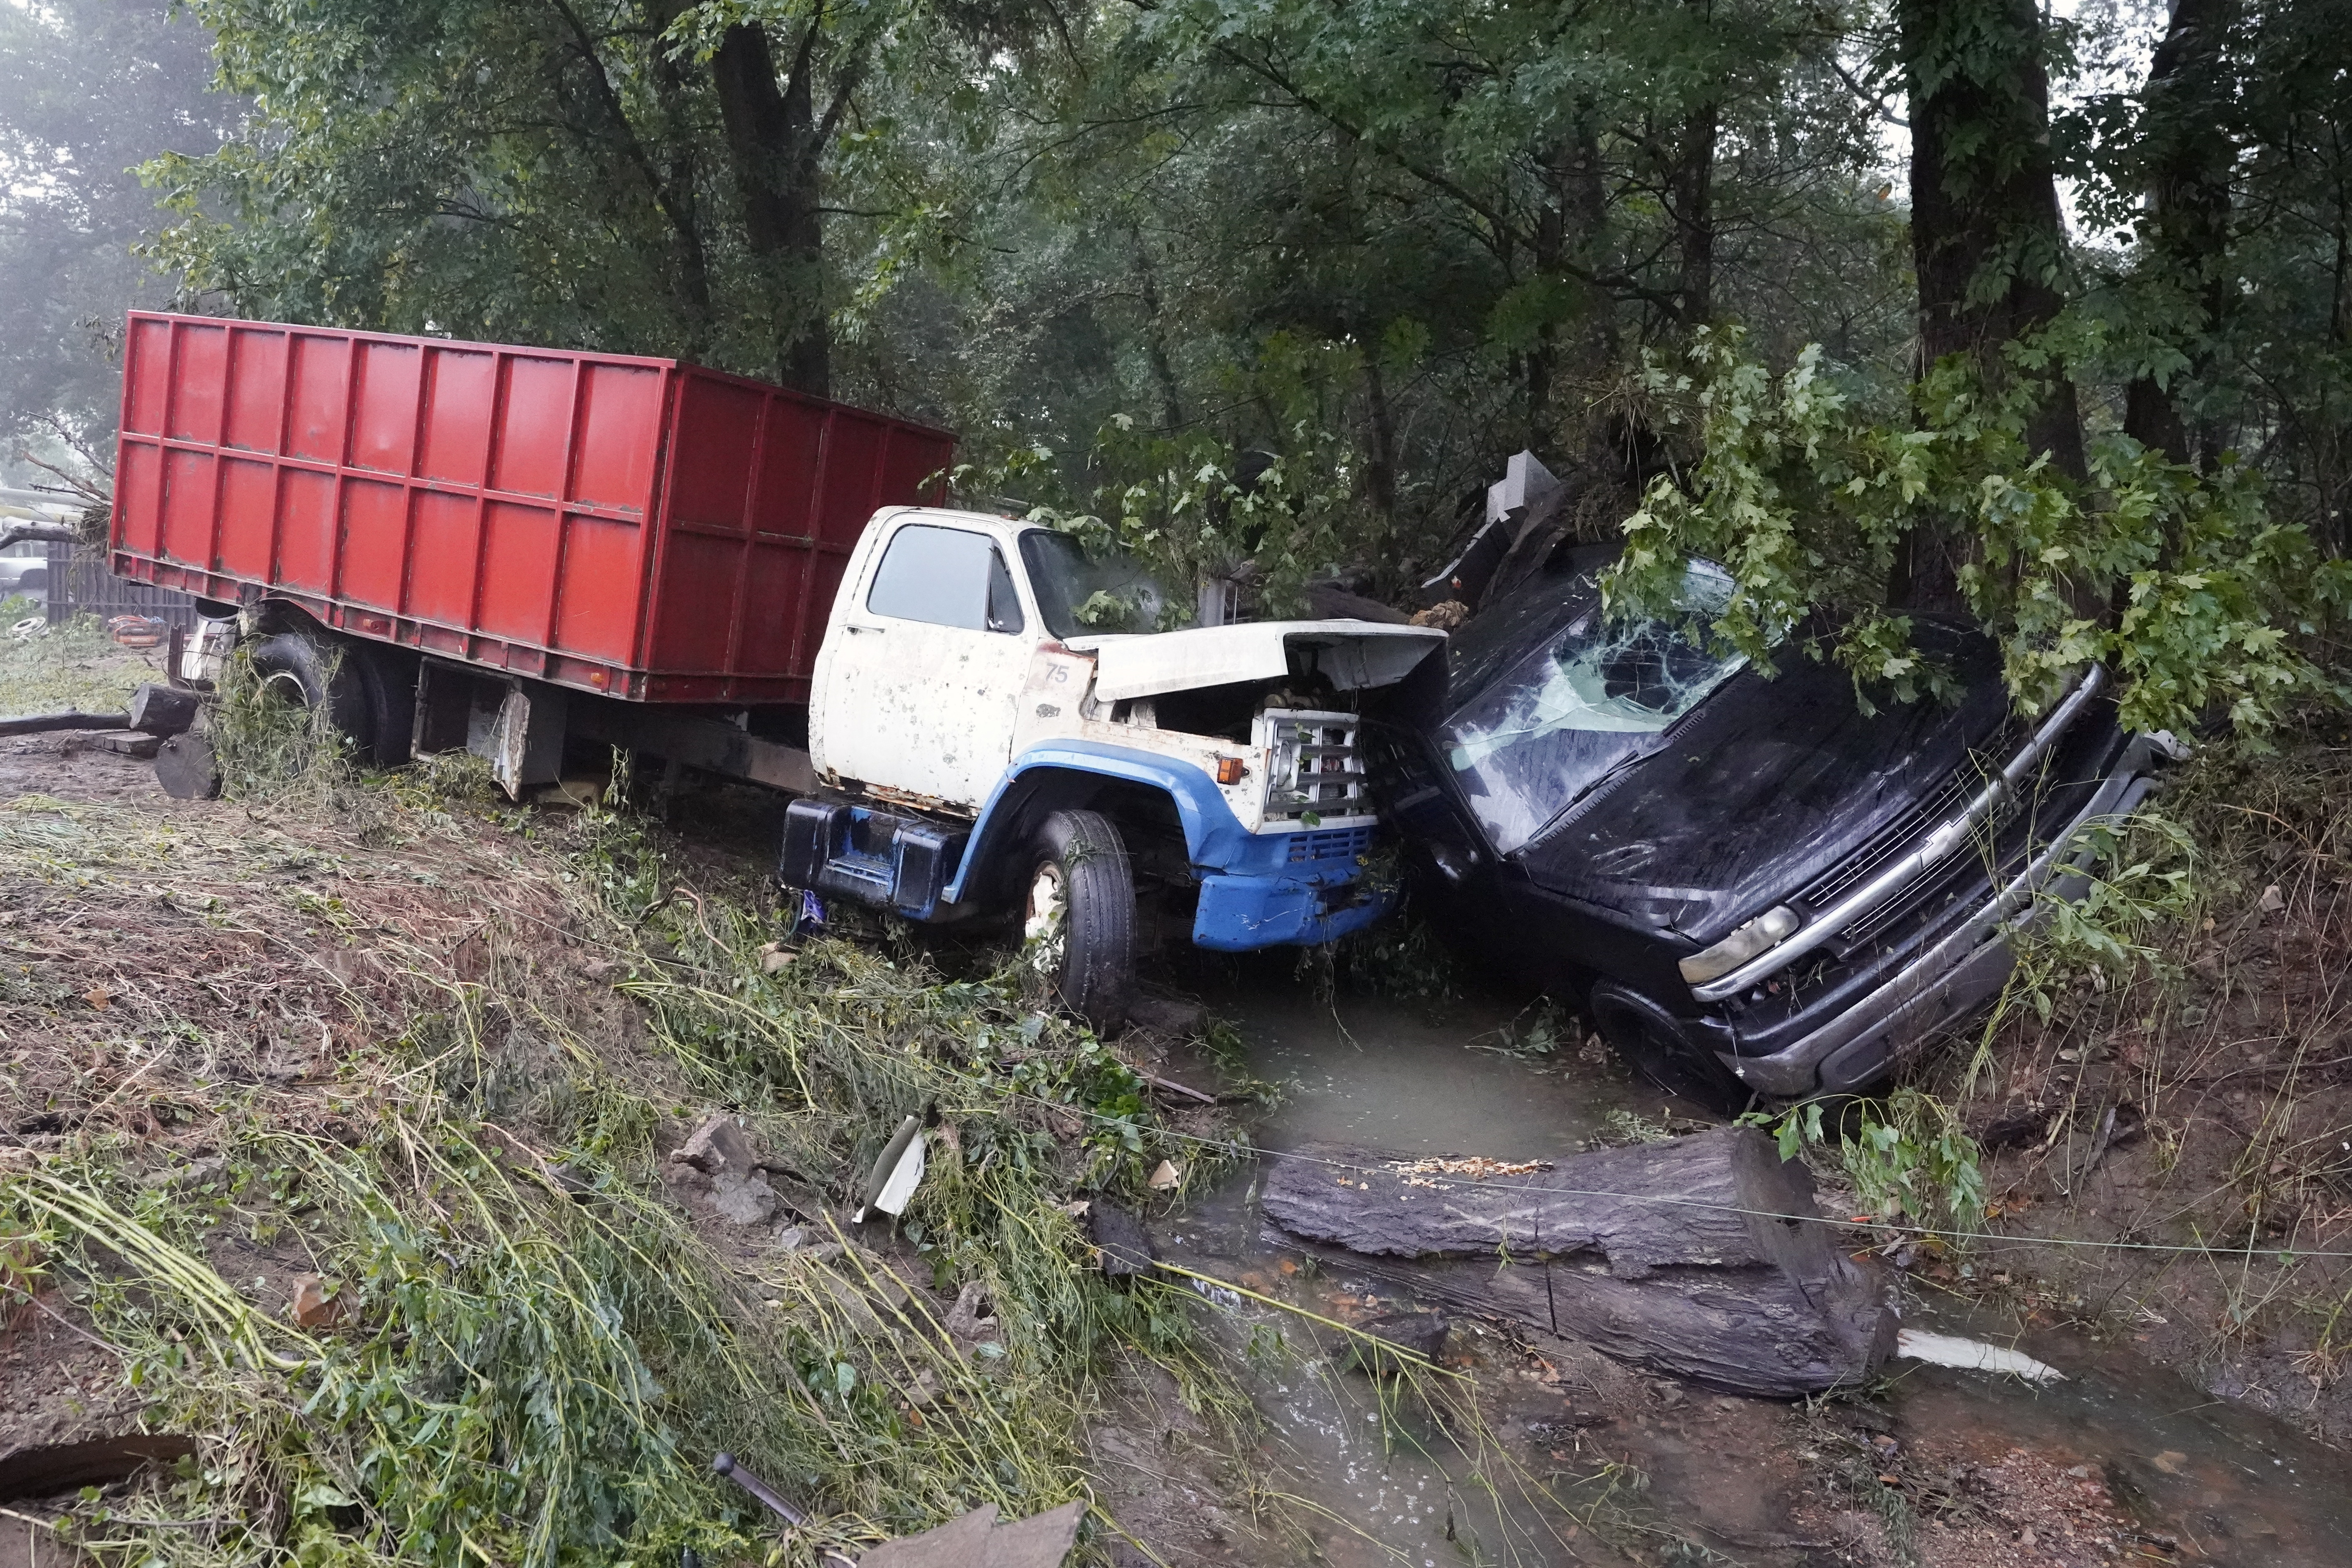 A truck and a car sit in a creek Sunday, Aug. 22, 2021, after they were washed away the day before in McEwen, Tenn. Heavy rains caused flooding in Middle Tennessee and have resulted in multiple deaths as homes and rural roads were washed away.